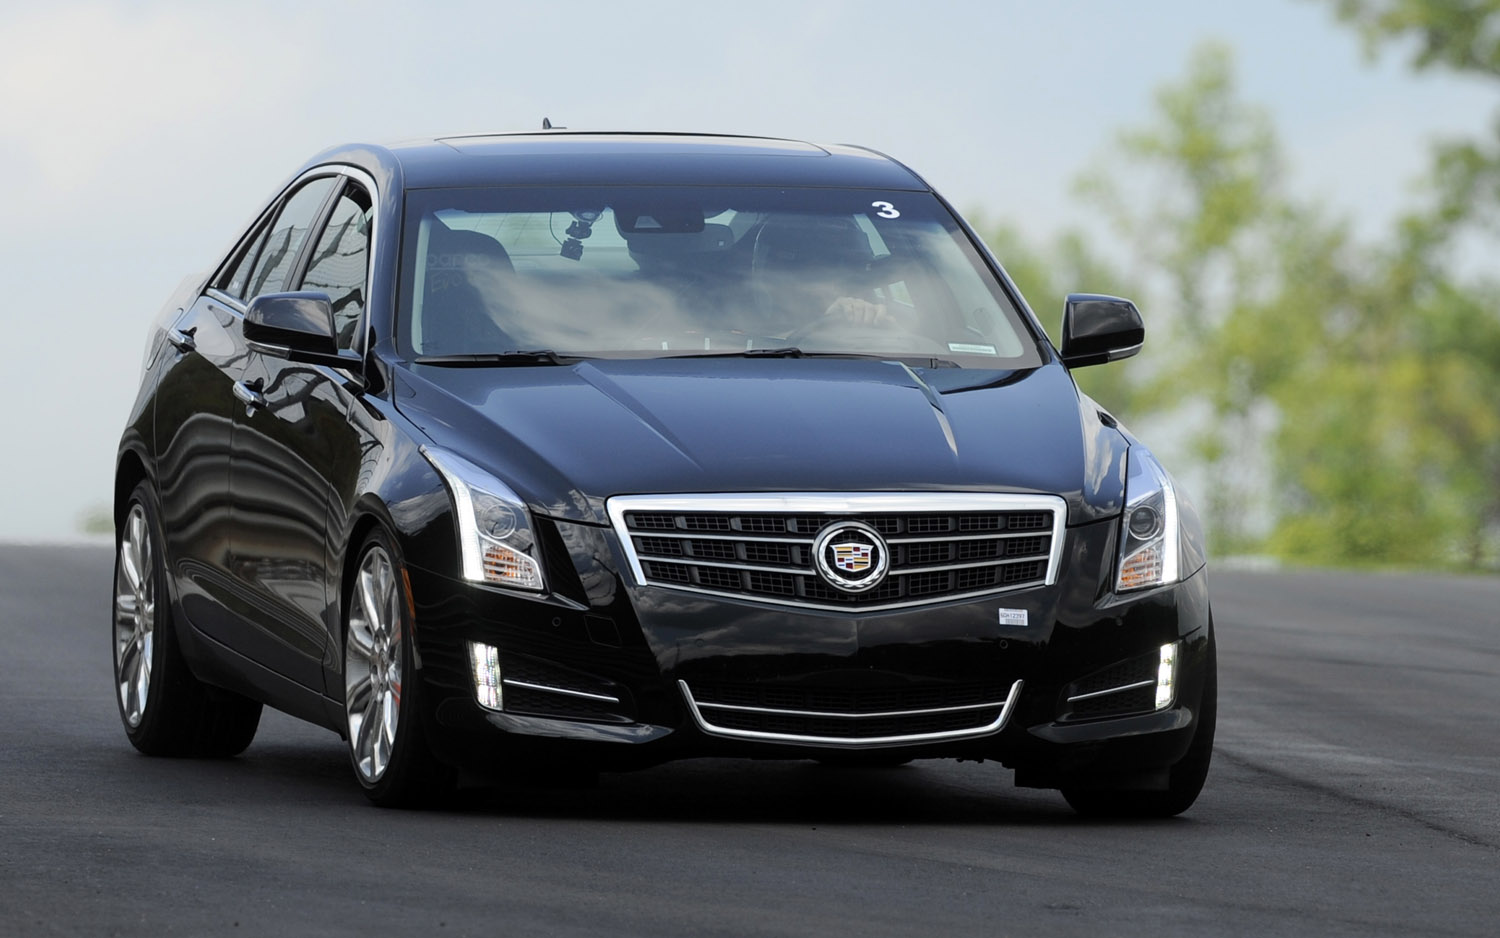 auto cadillac images pictures and ats specs information com database